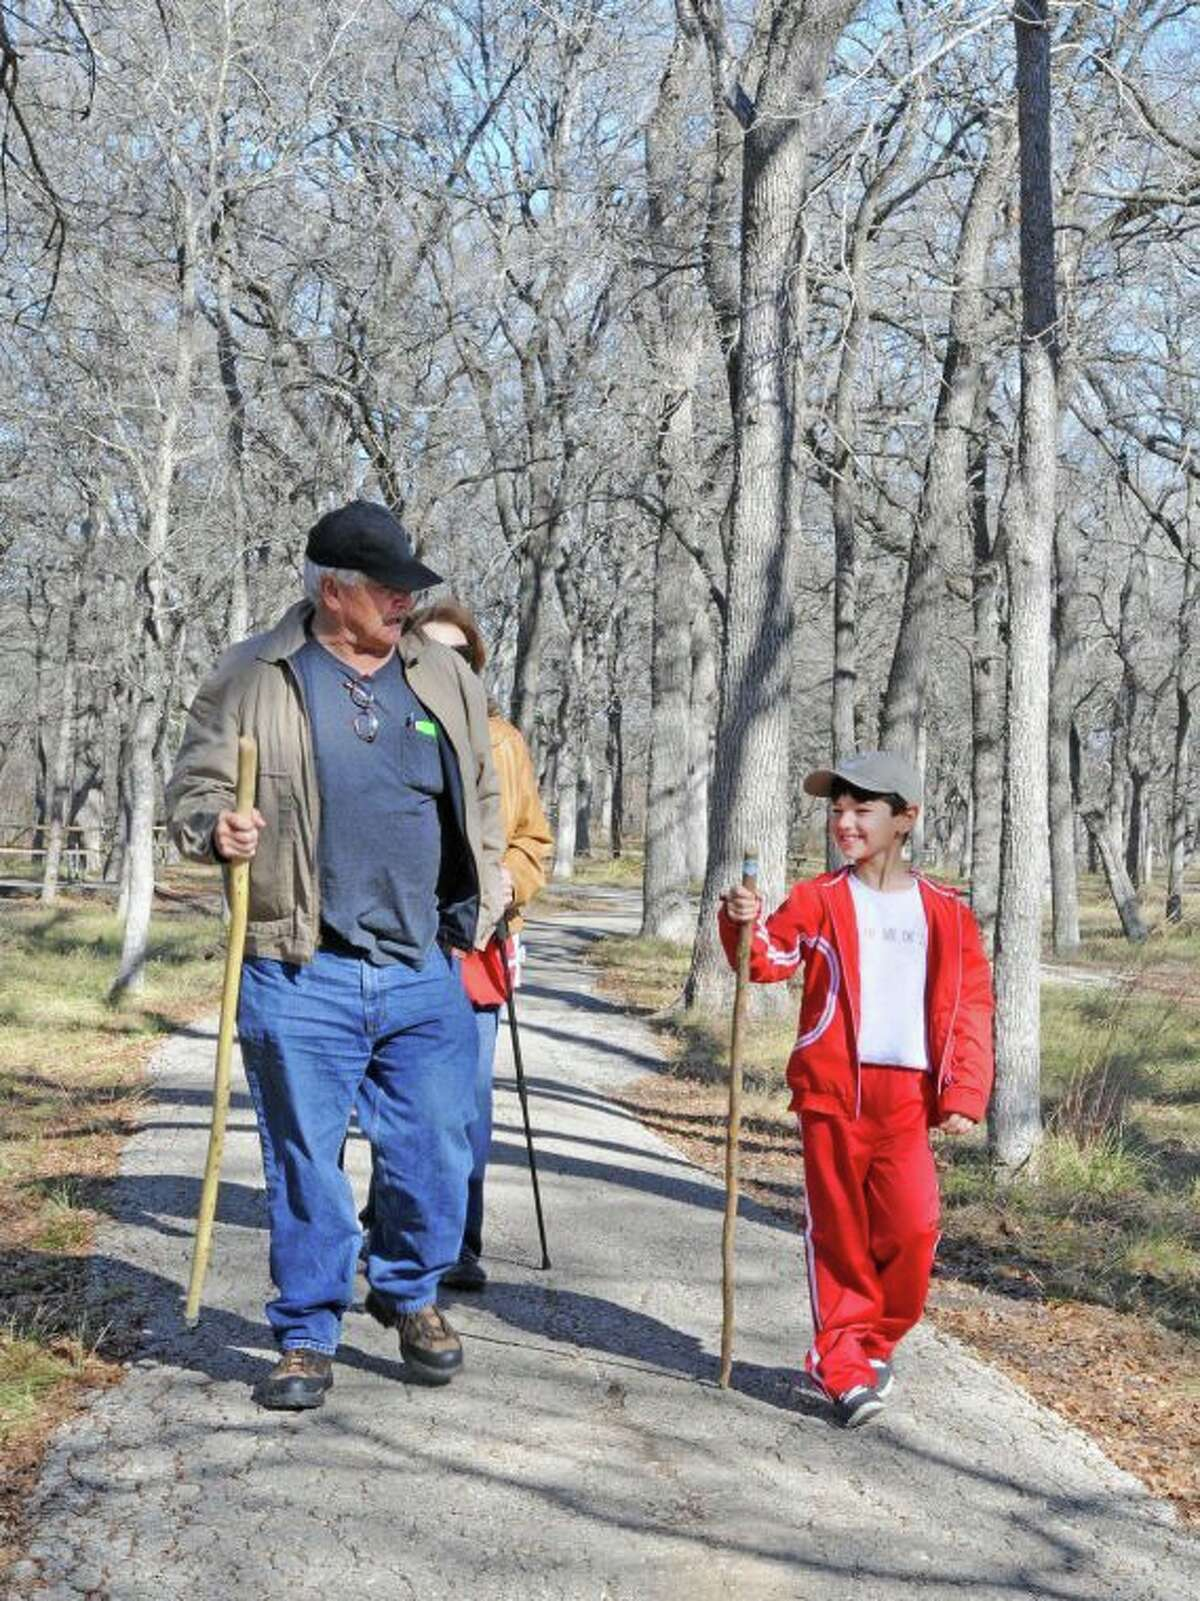 More than 1,000 people showed up across Texas as part of the First Day Hikes Program on New Year's Day to enjoy guided nature hikes at Texas State Parks.